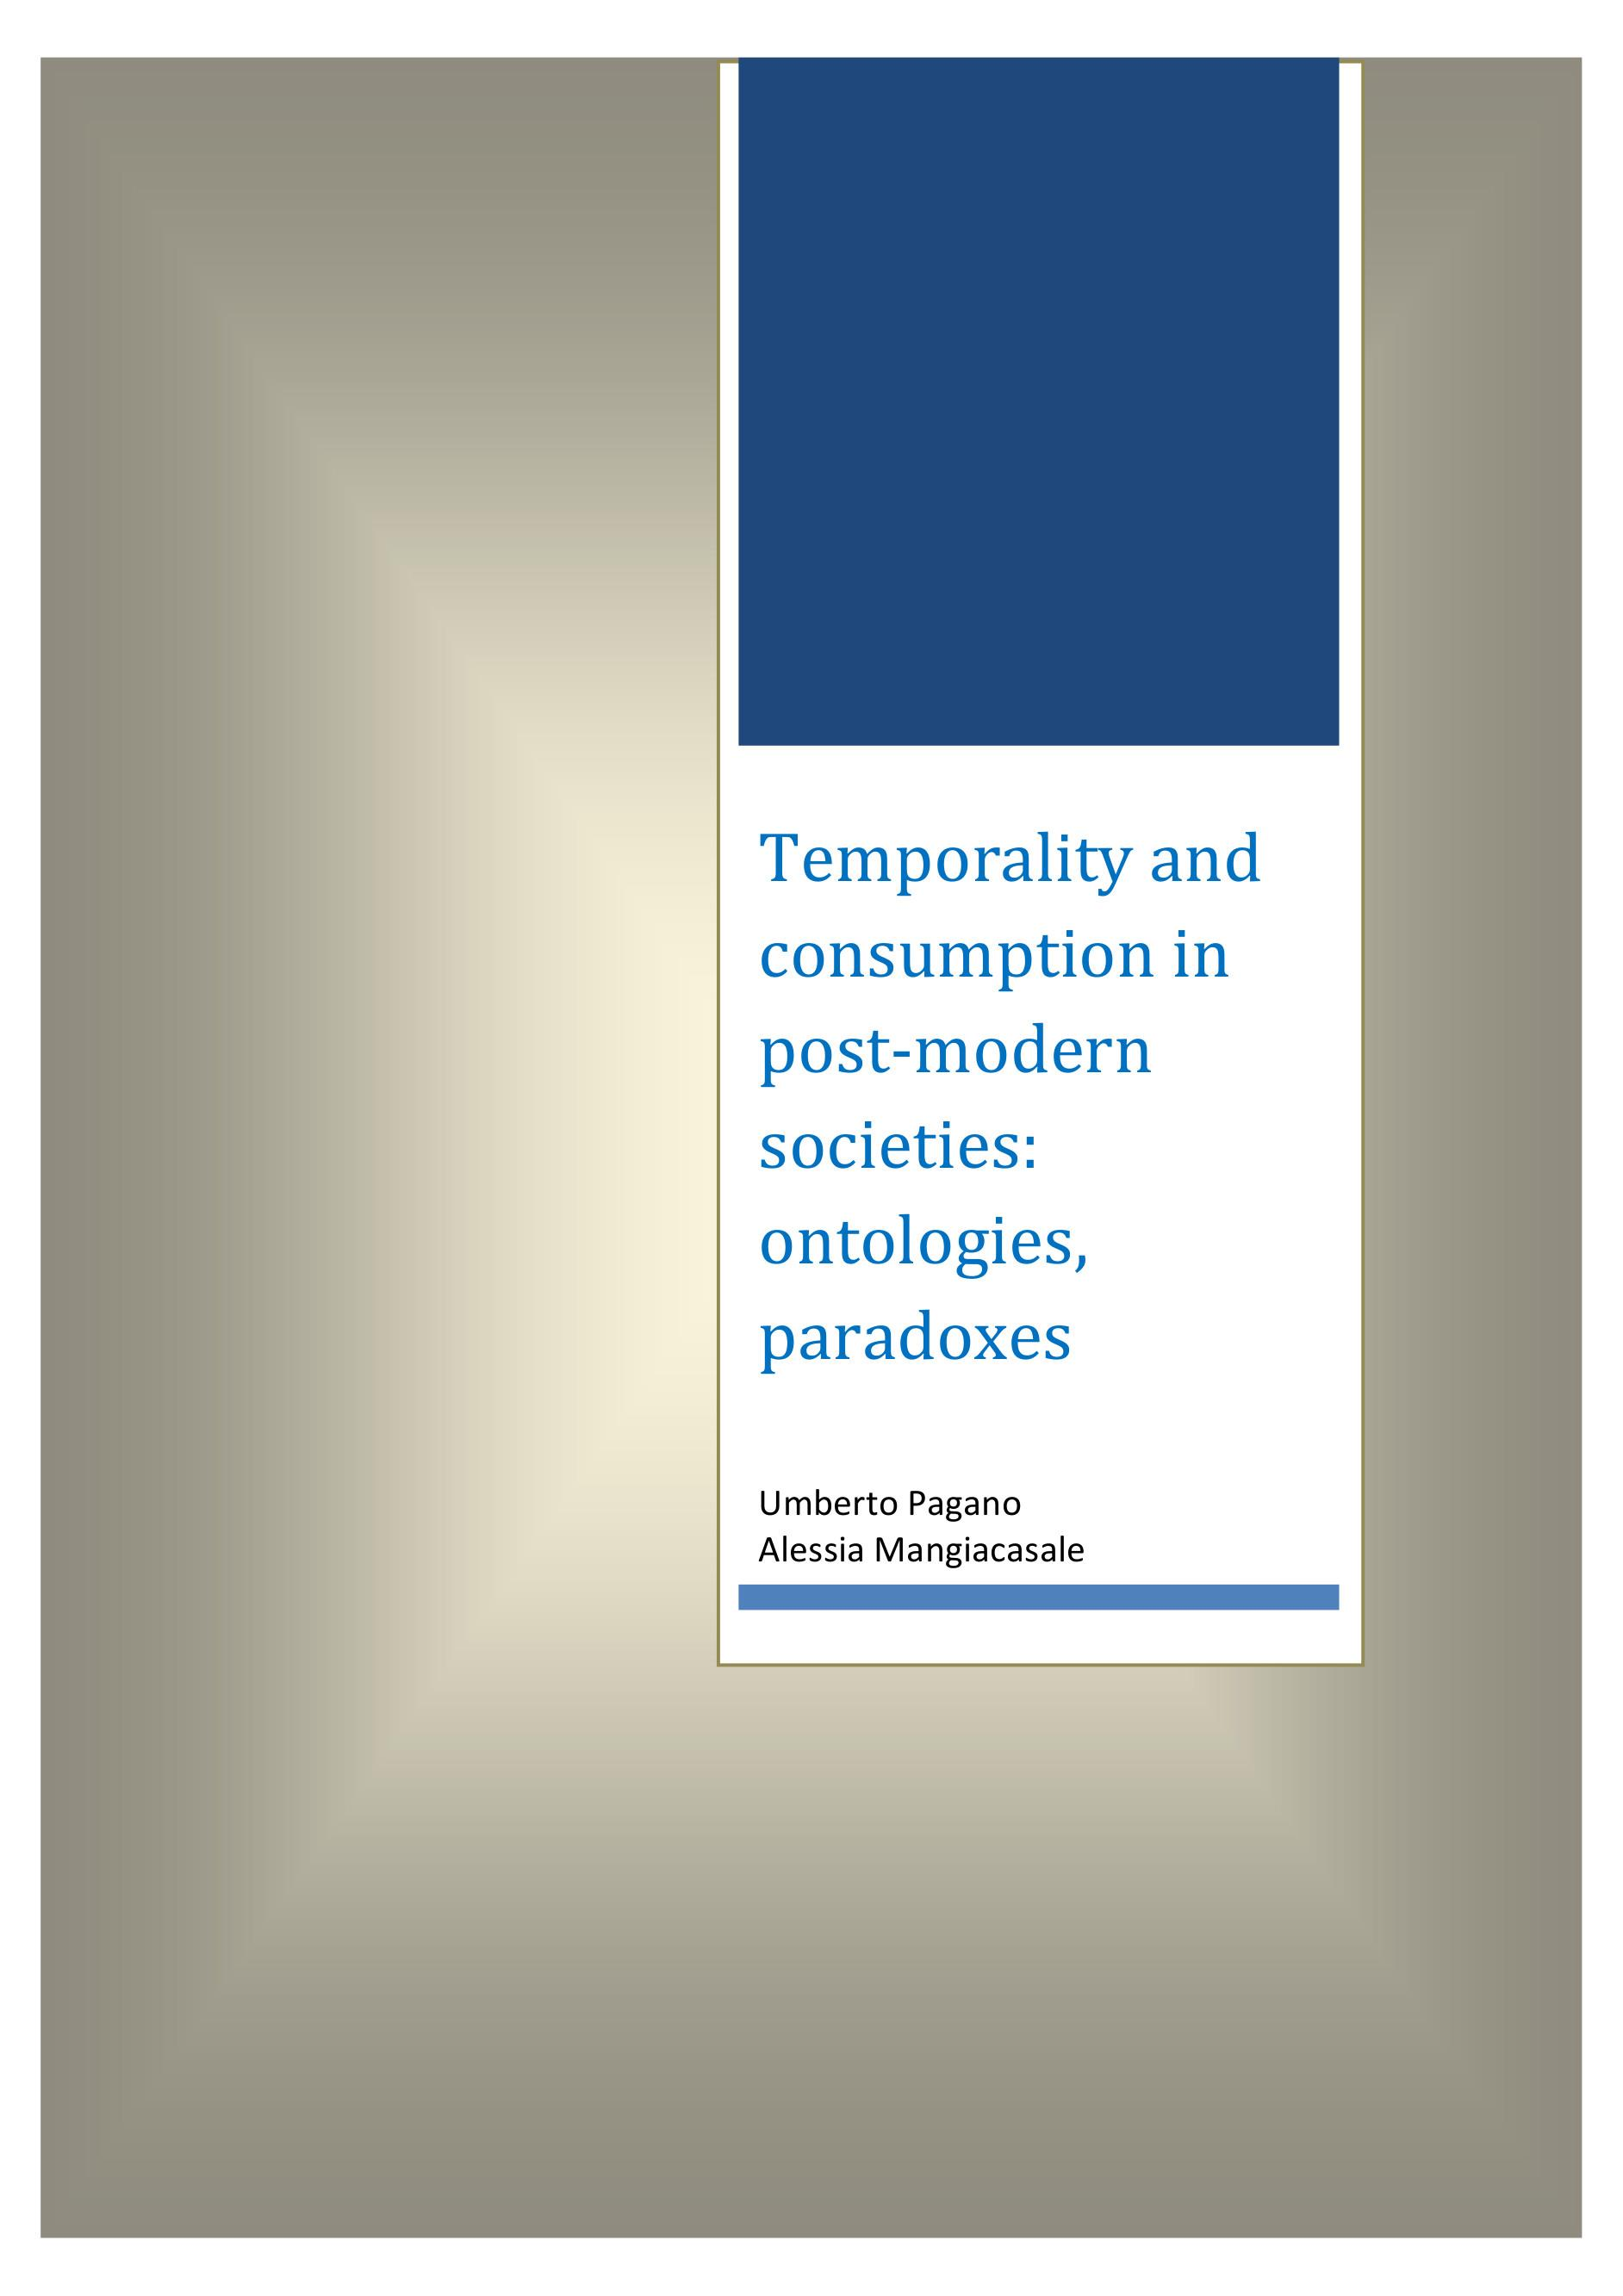 Temporality and consumption in post-modern societies: ontologies, paradoxes